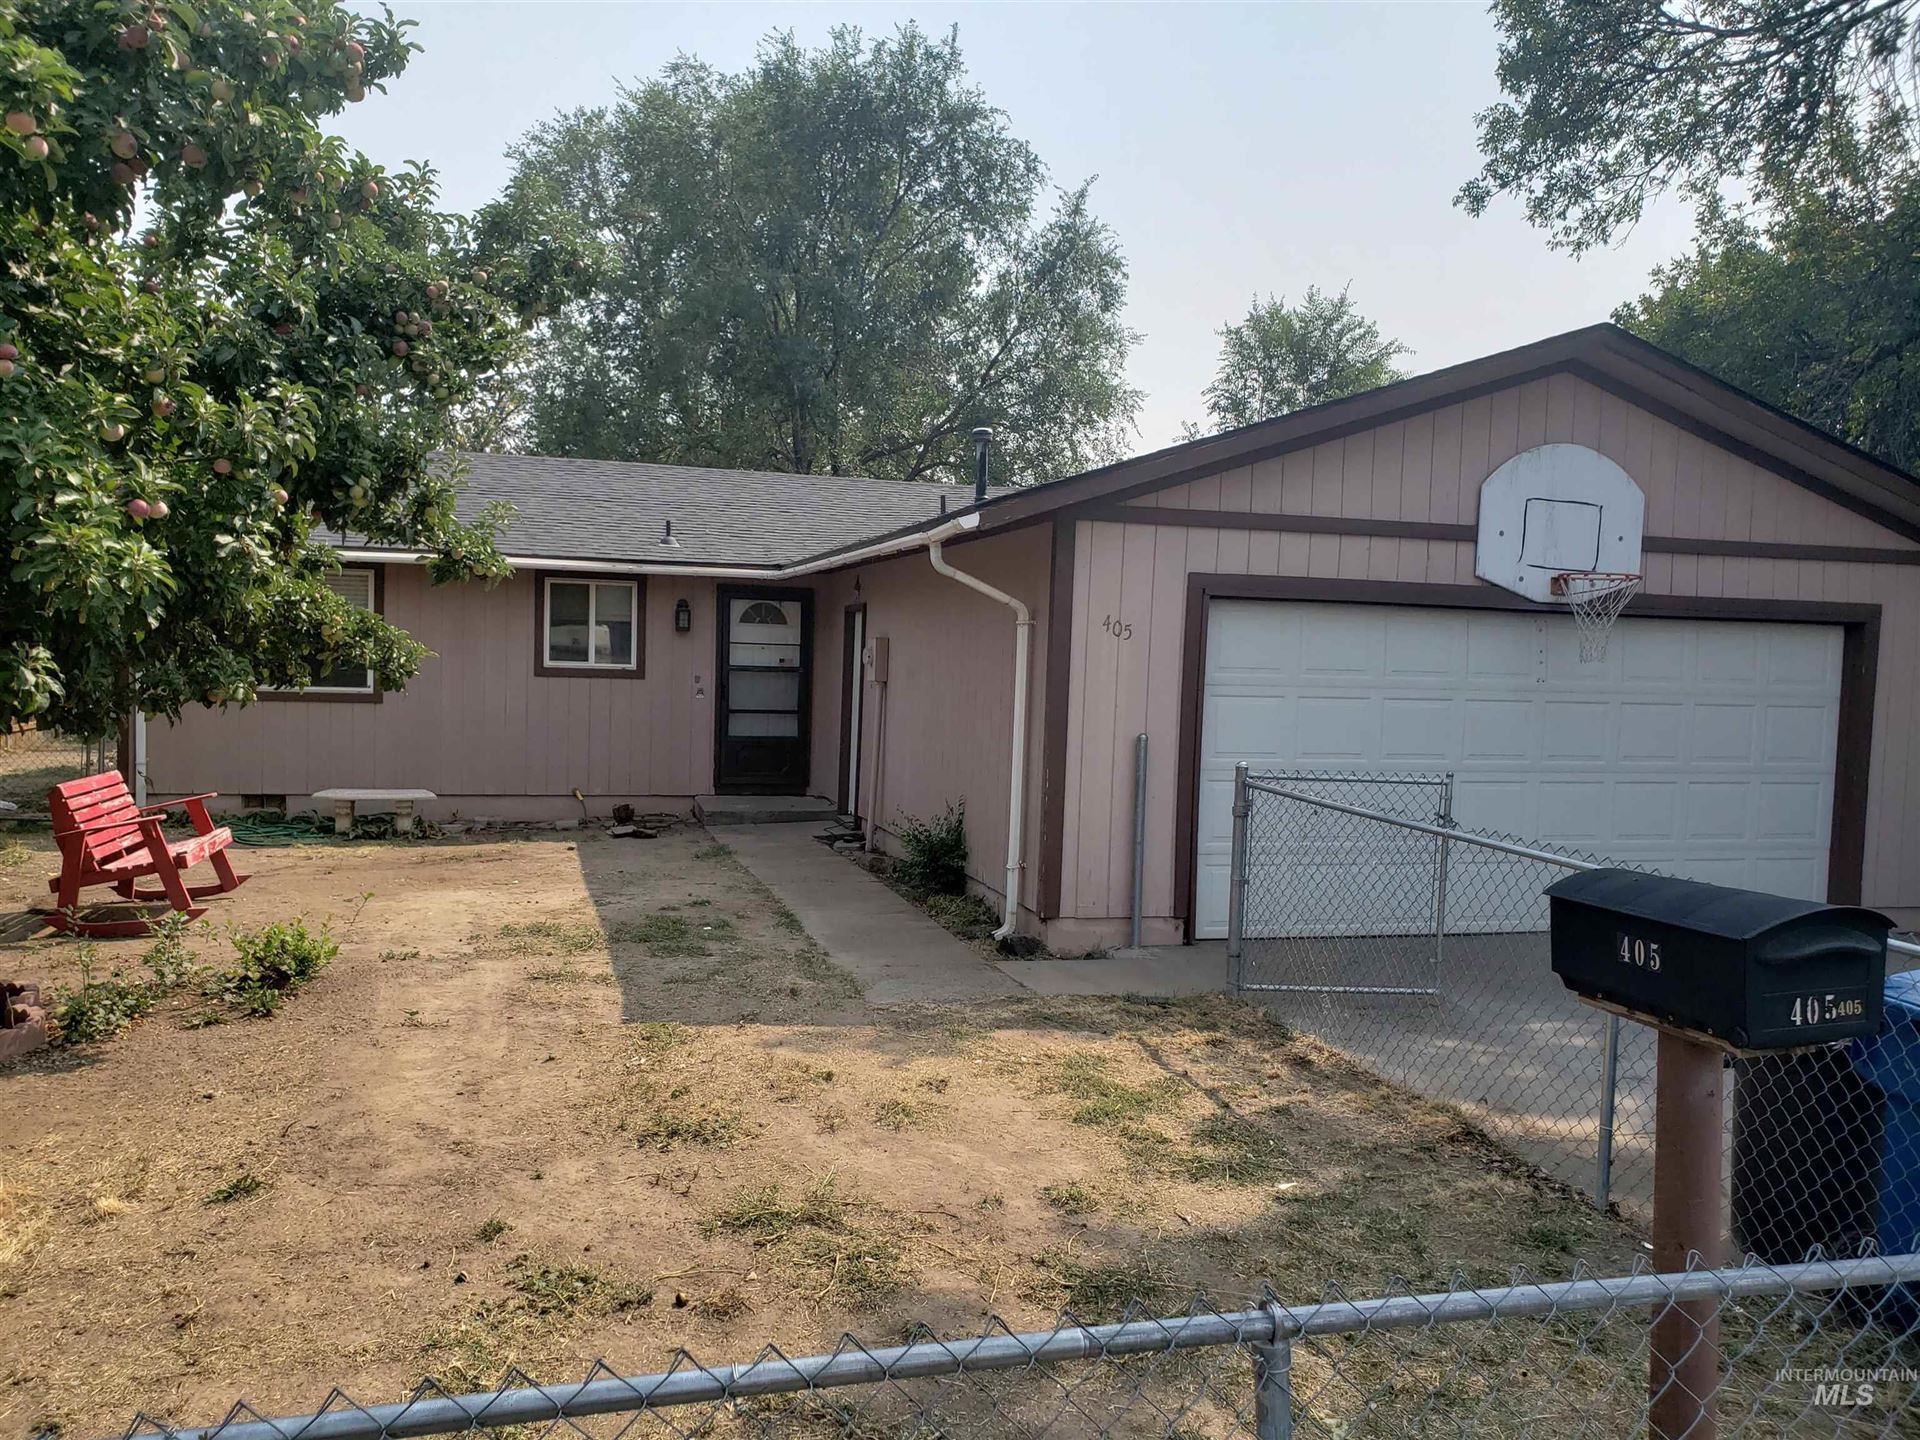 405 Tindall Ave, Mountain Home, ID 83647 - MLS#: 98817935